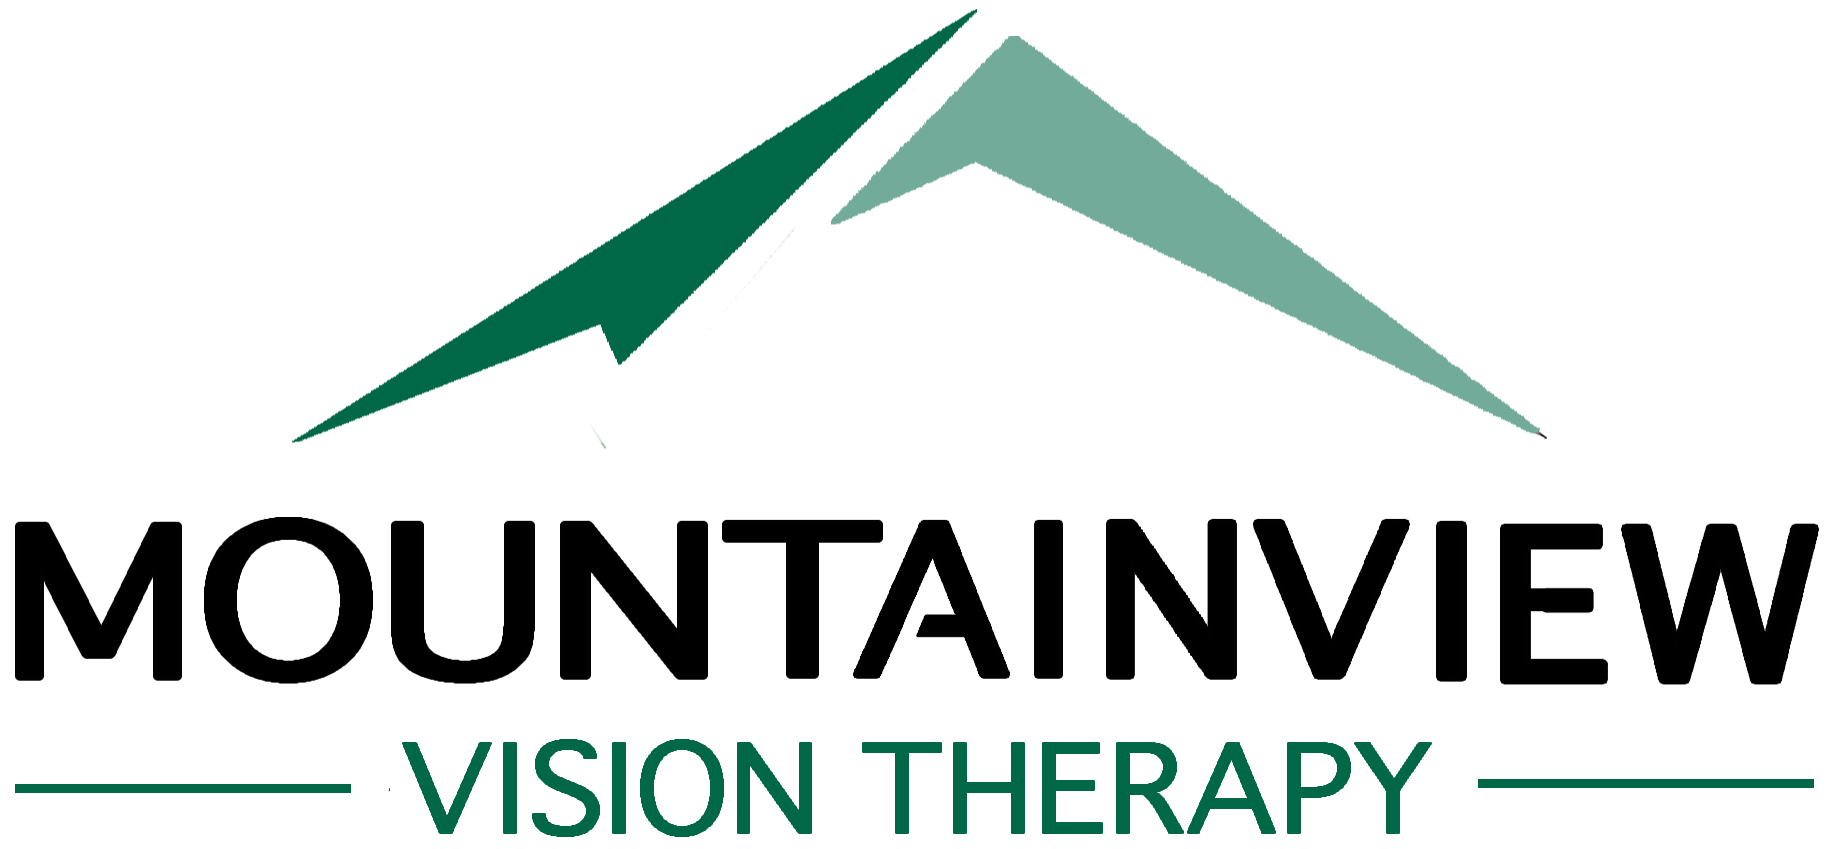 Mountainview Vision Therapy